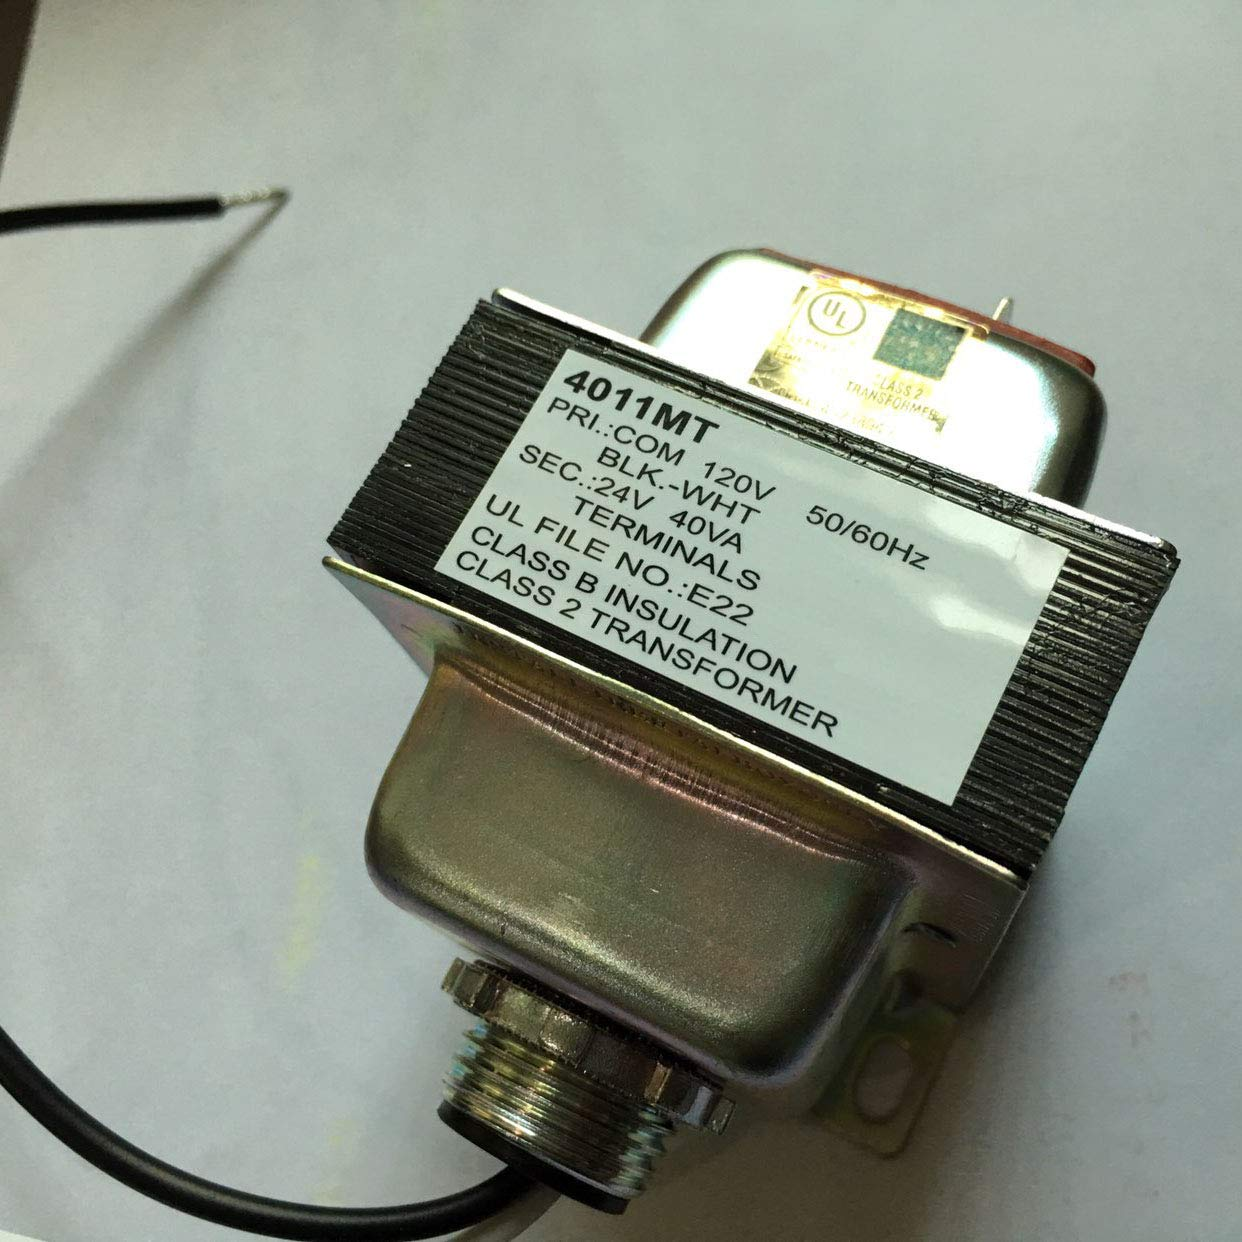 UHPPOTE 24V 40VA Thermostat Doorbell Transformer 120VAC Input 24VAC Output with UL-Listed